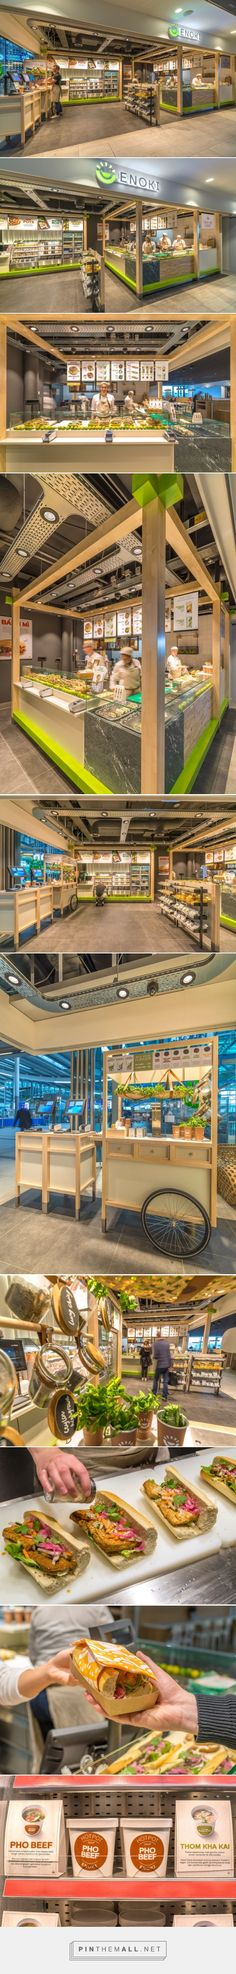 Enoki Fast Food Restaurant by VBAT, Utrecht – Netherlands »  Retail Design Blog - created via https://pinthemall.net